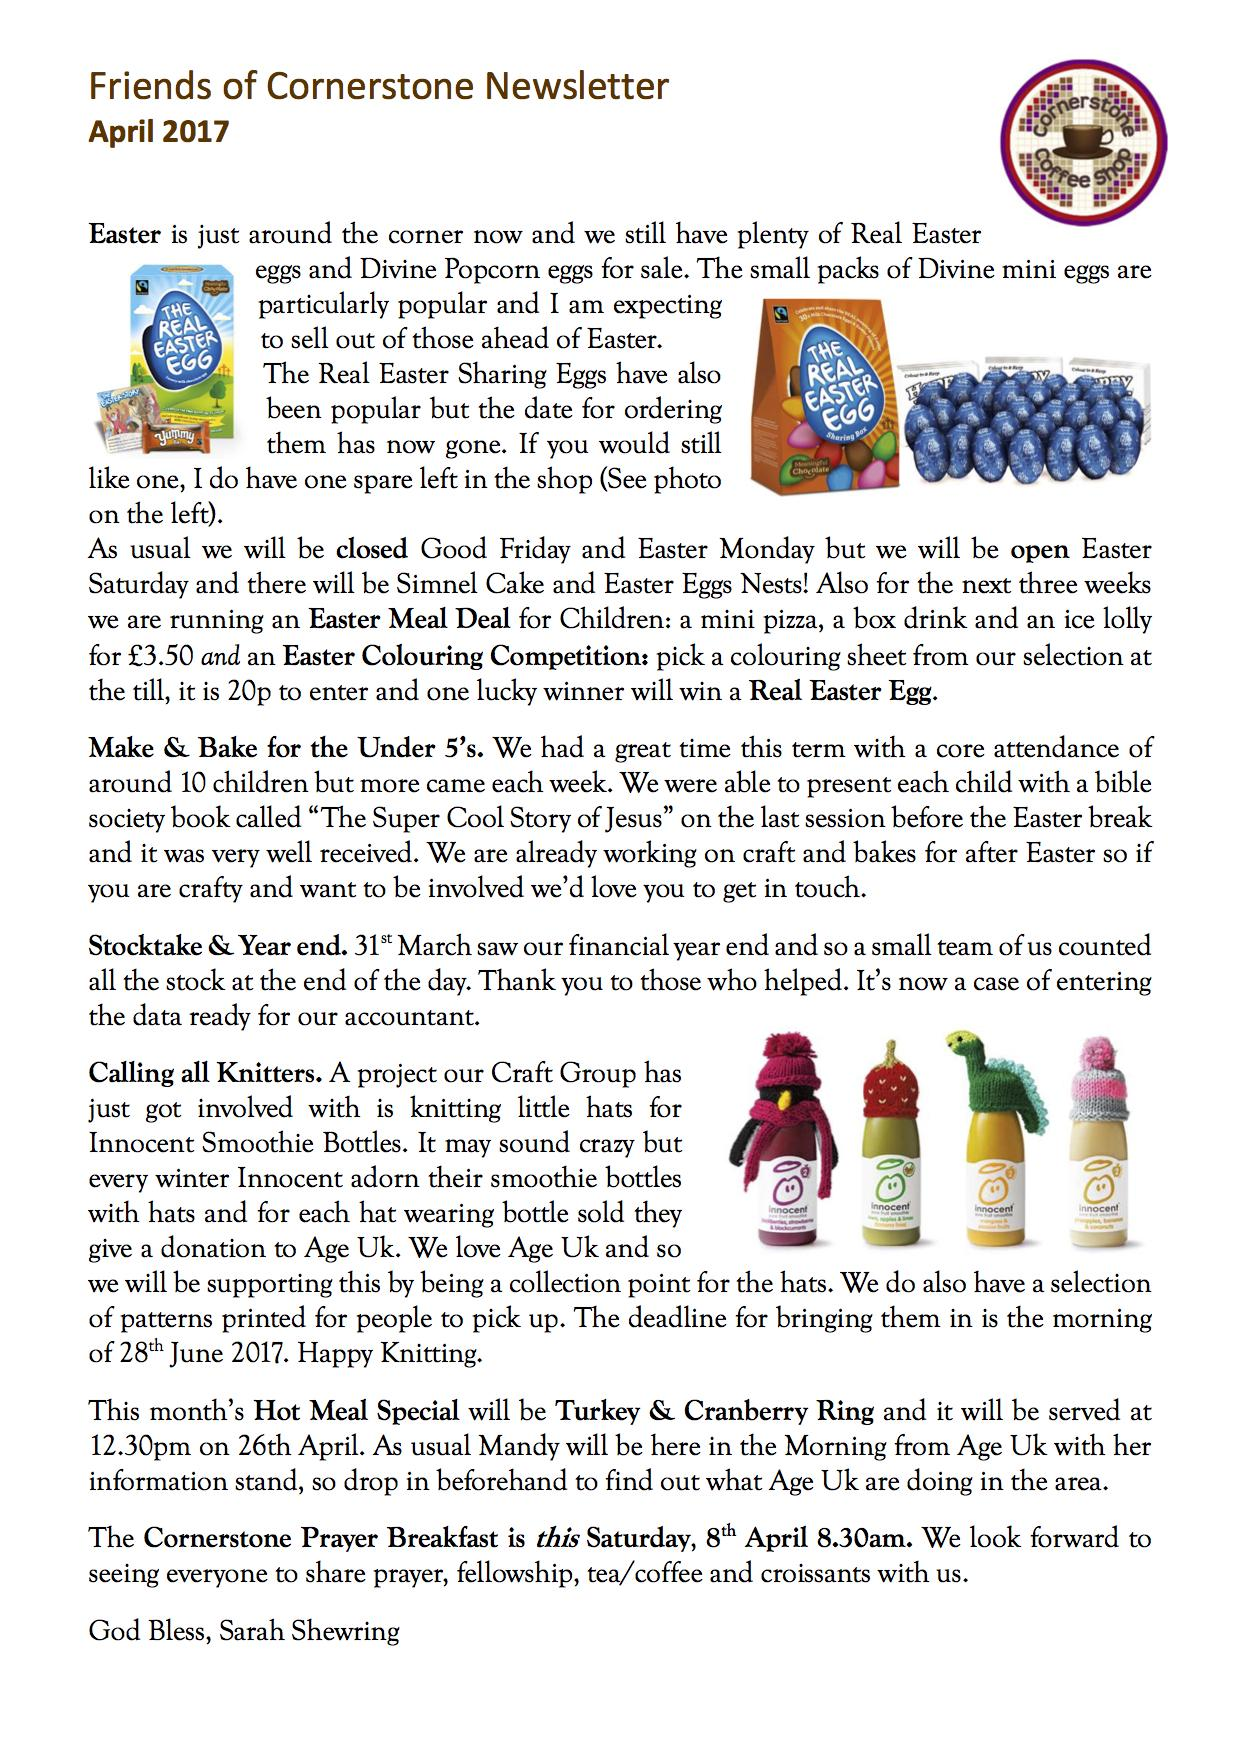 Friends Newsletter April 2017